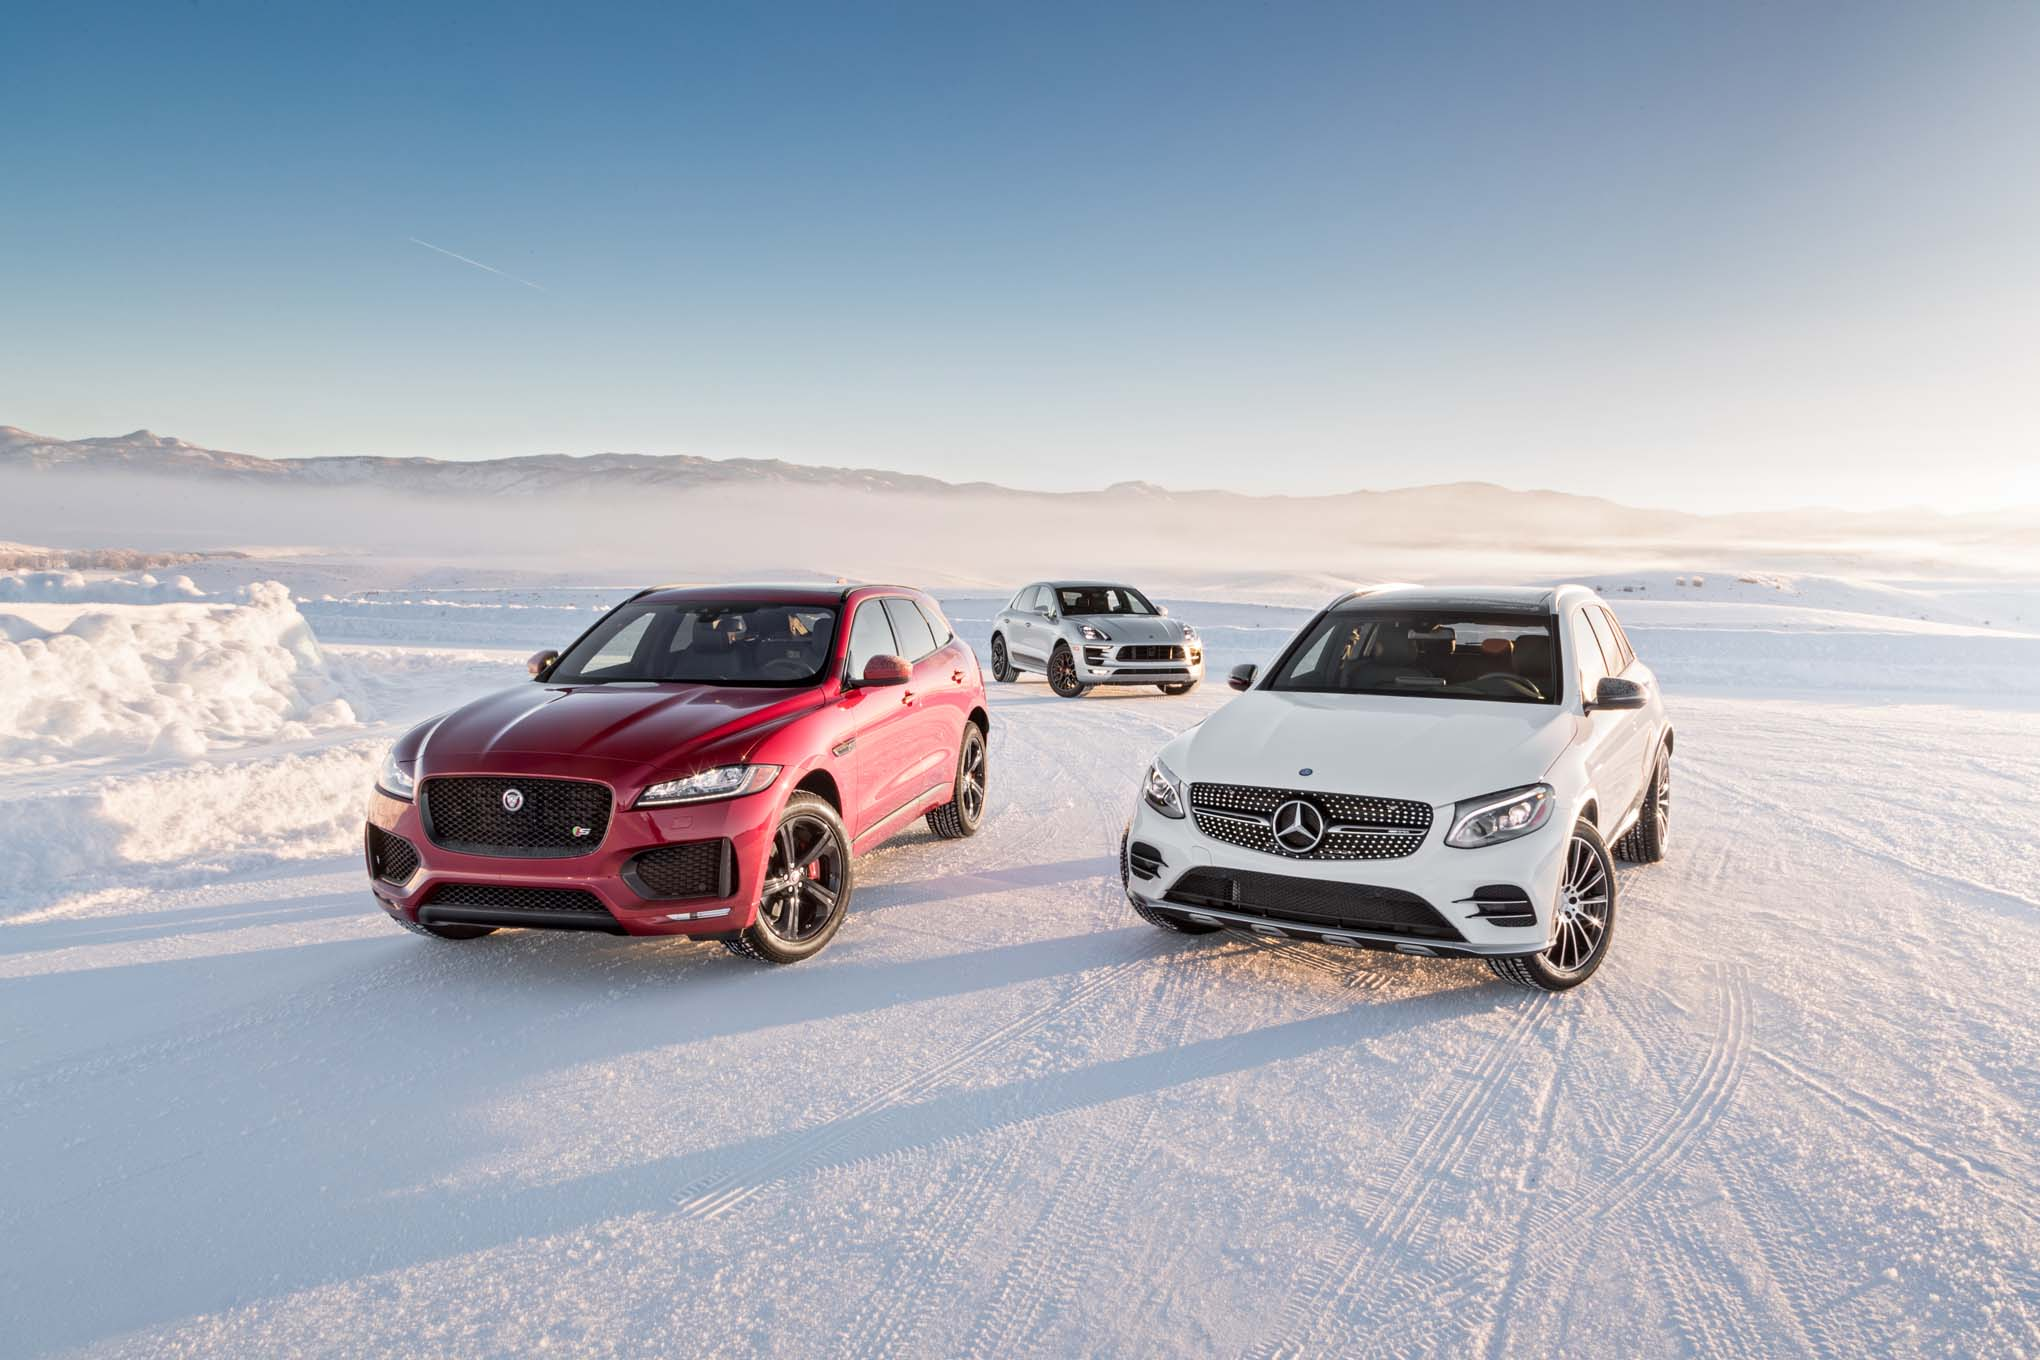 Jaguar F Pace S AWD Mercedes AMG GLC43 4Matic Porsche Macan GTS front three quarter 02